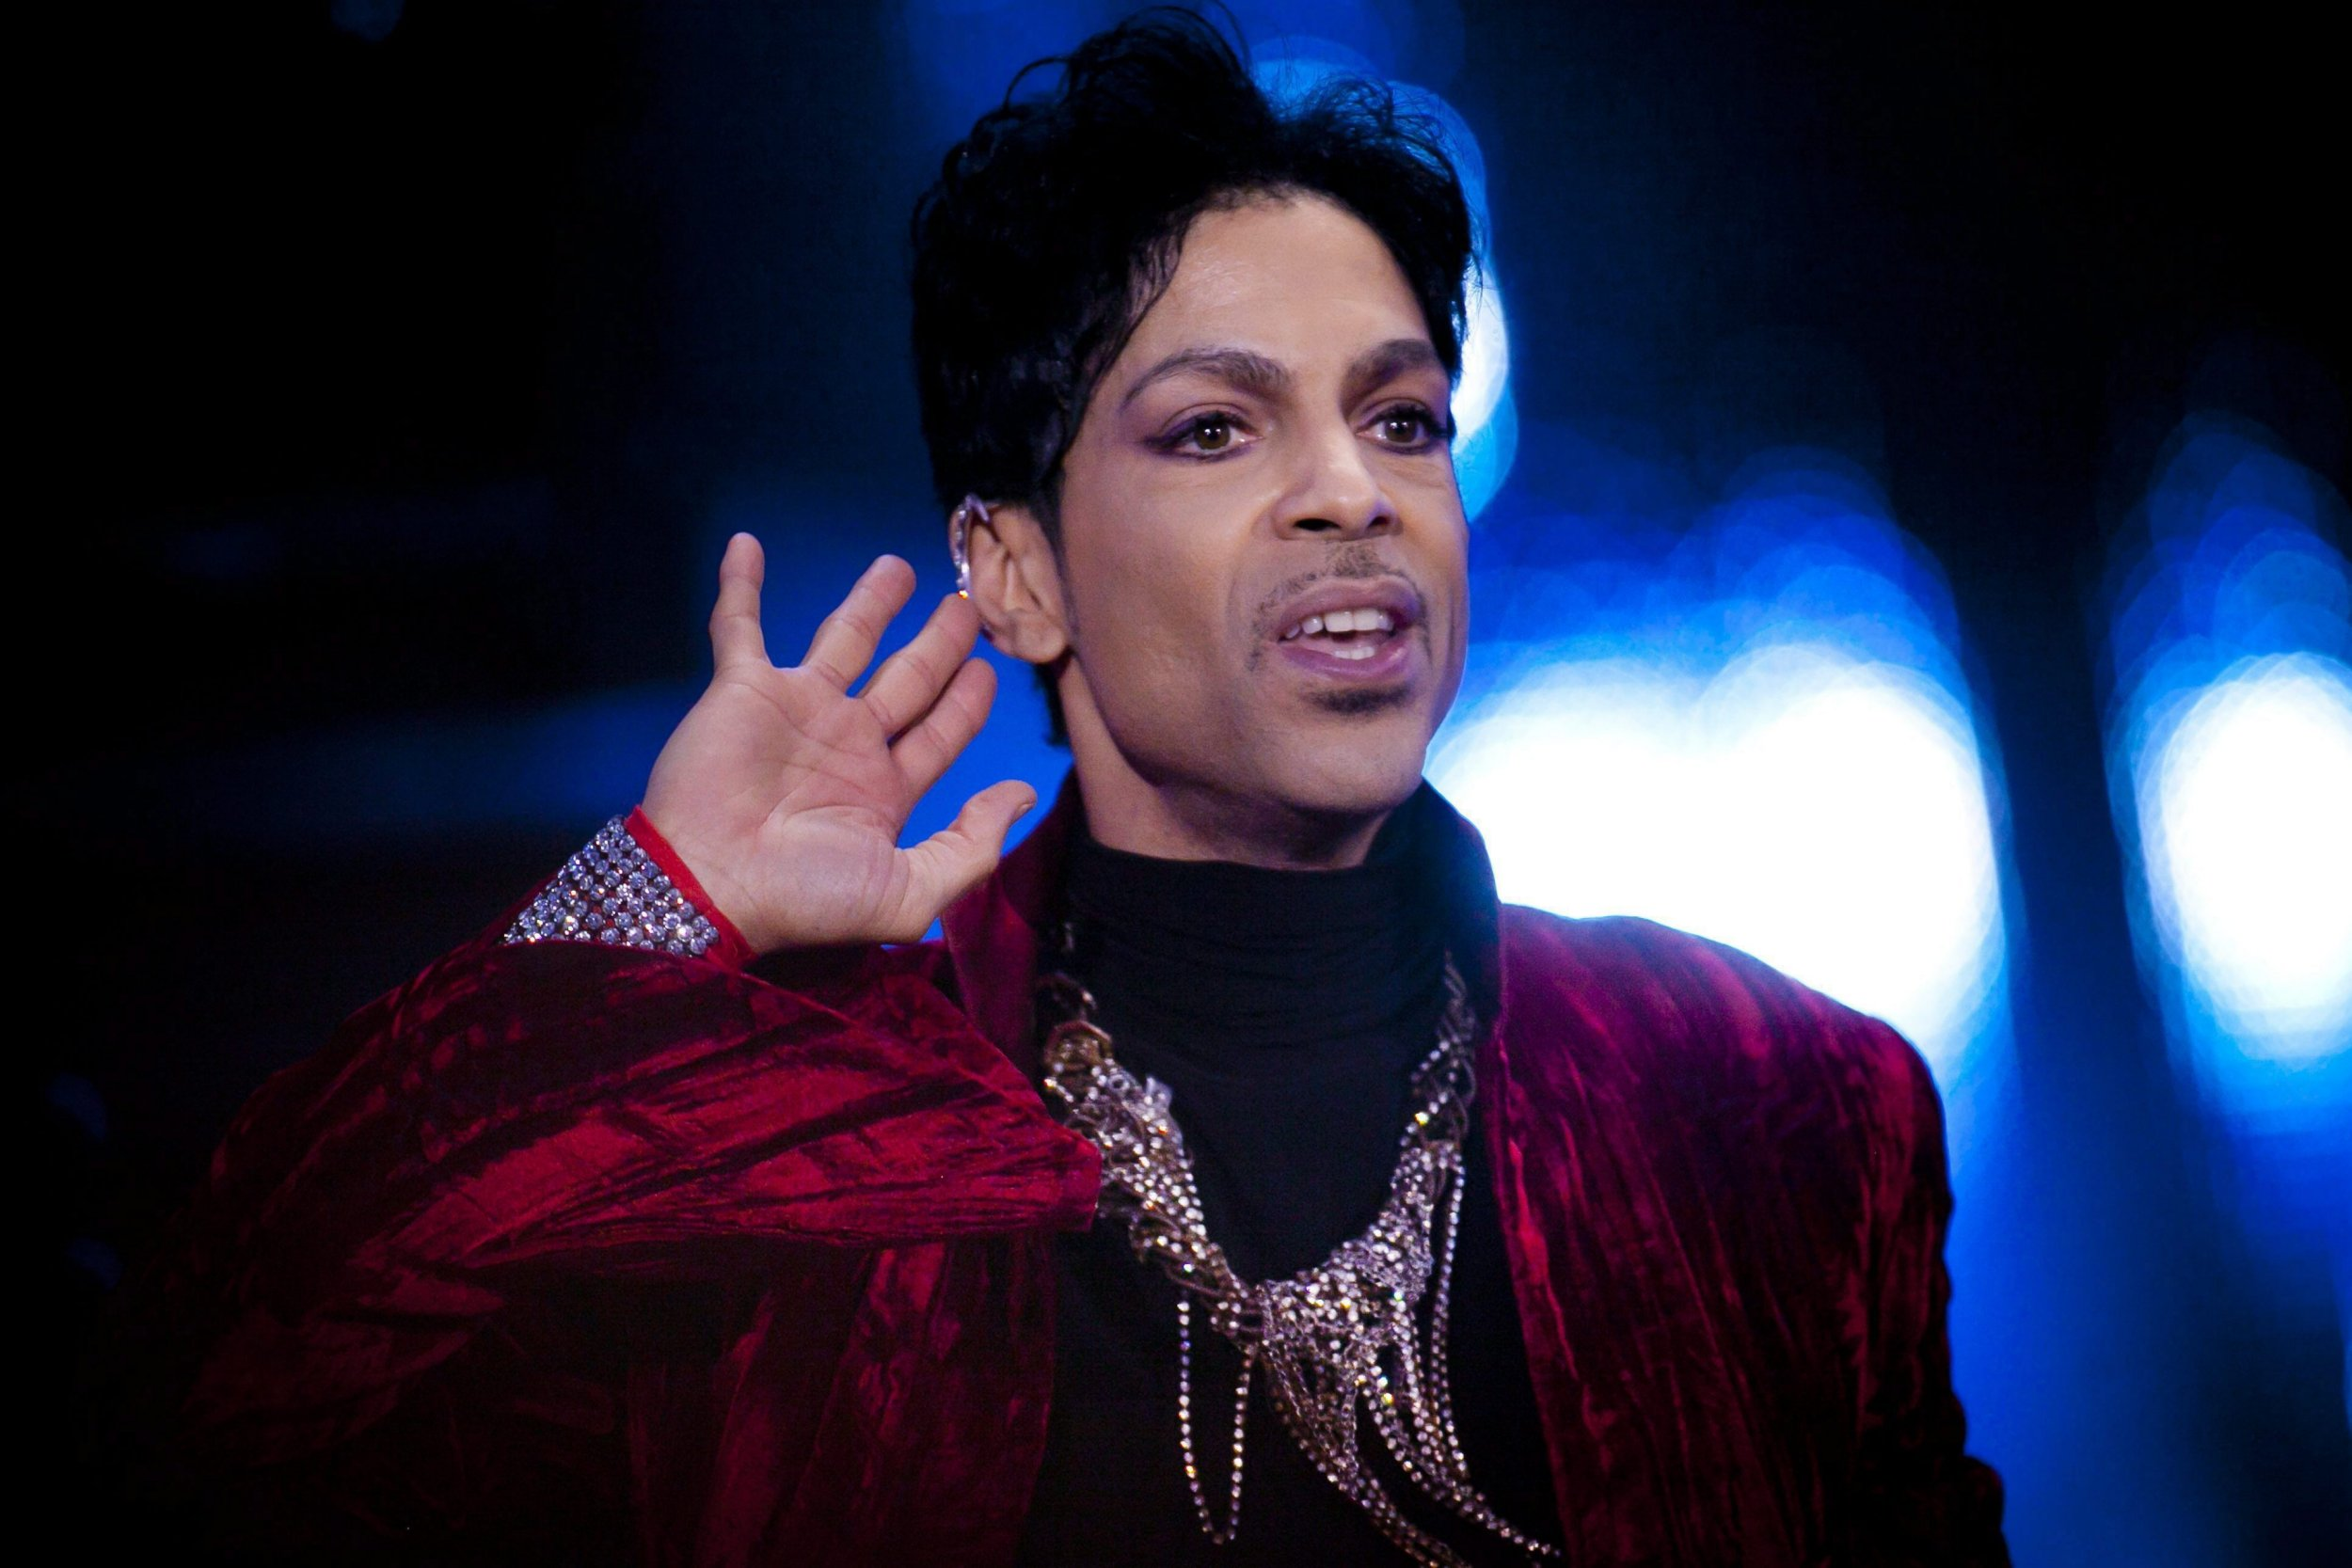 epa05270789 (FILE) A file picture dated 09 August 2011 of US musician Prince, during his concert at the Sziget Festival on the Shipyard Island, northern Budapest, Hungary. According to media reports, Prince died on 21 April 2016 at his Paisley Park residence in Minnesota, USA, at the age of 57. EPA/BALAZS MOHAI CORBIS OUT